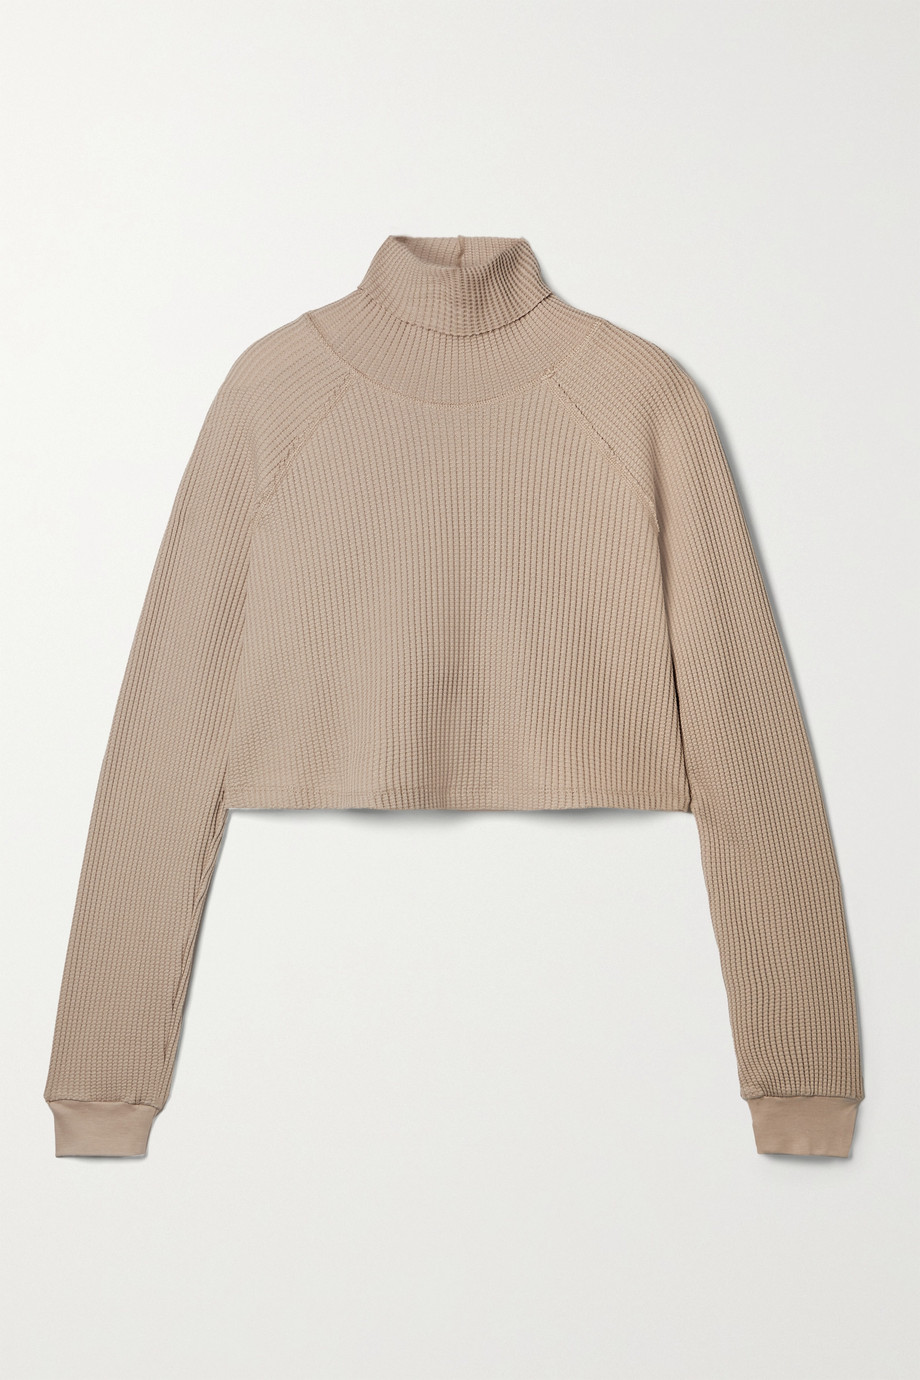 THE RANGE Stark cropped waffle-knit cotton-blend turtleneck top